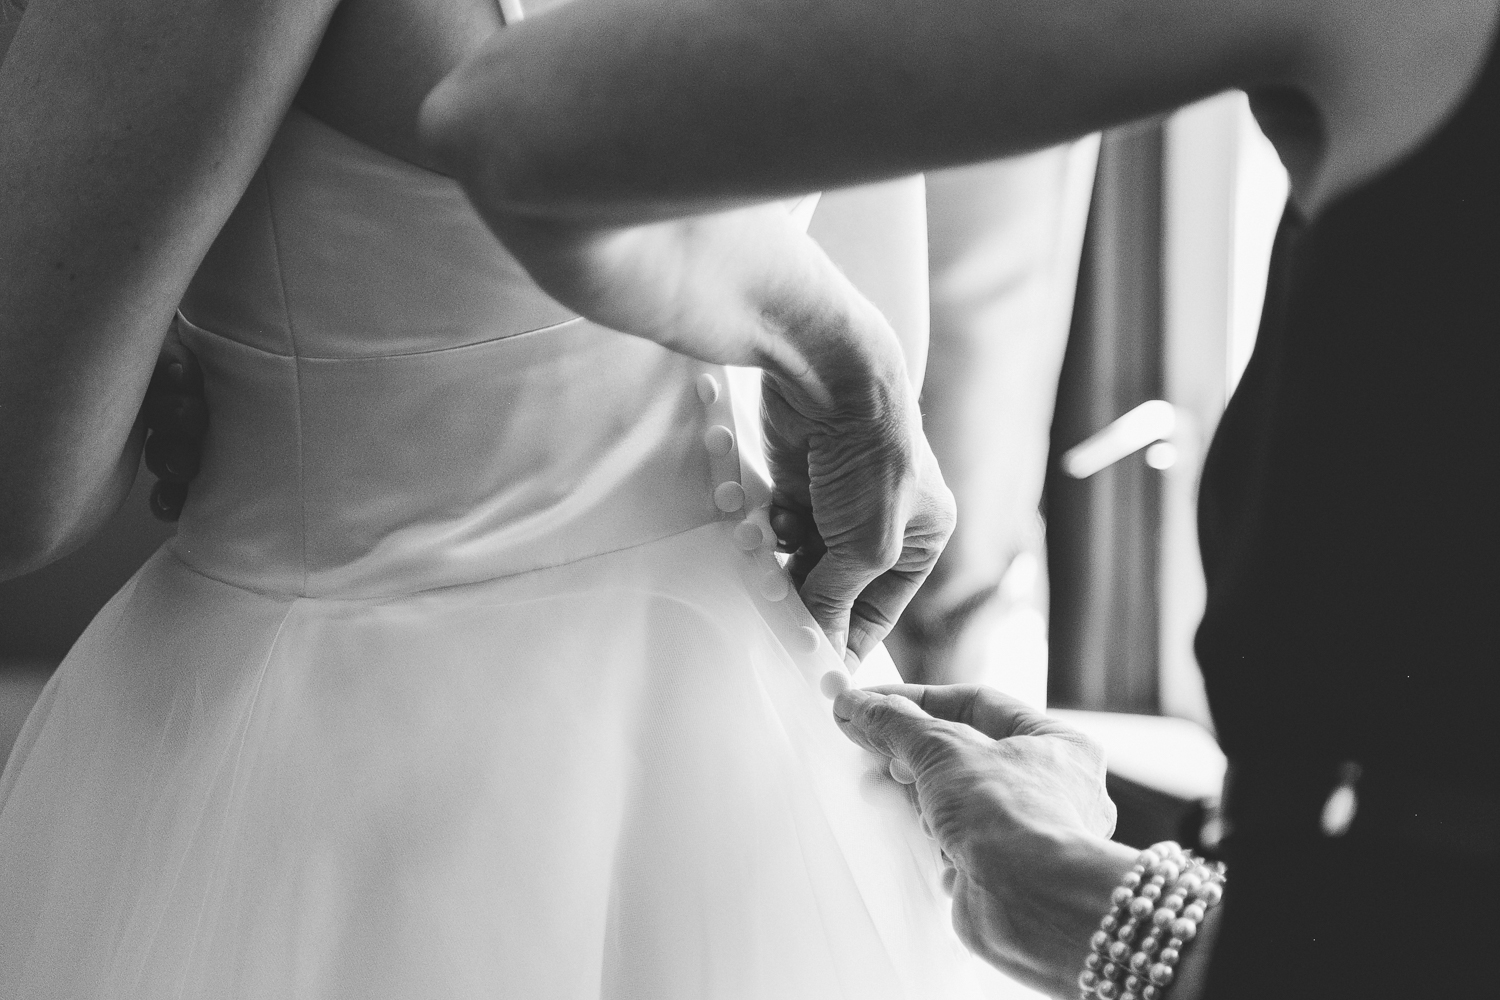 lethbridge-wedding-photographer-love-and-be-loved-photography-dan-tynnea-picture-image-photo-10.jpg